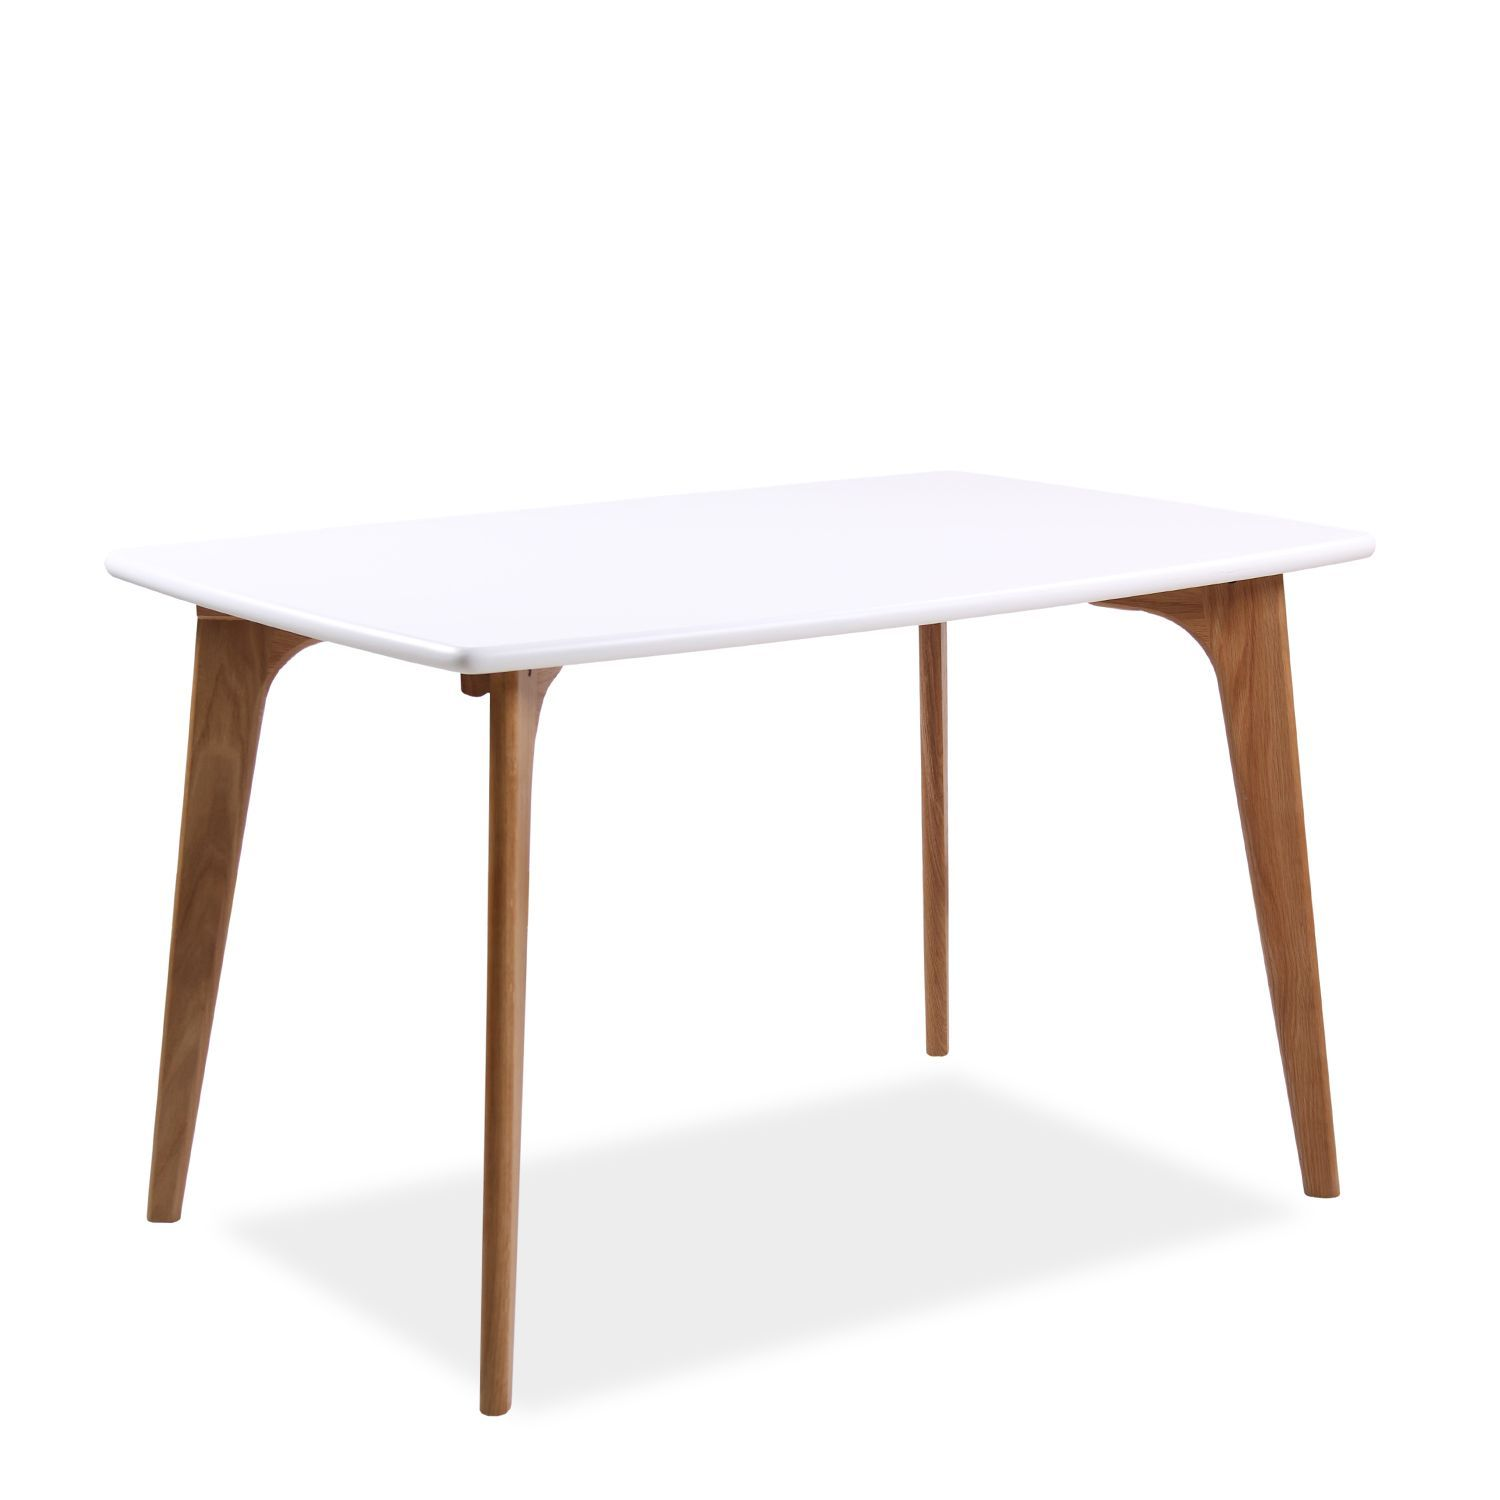 Permalink to Incroyable De Table Basse Le Corbusier